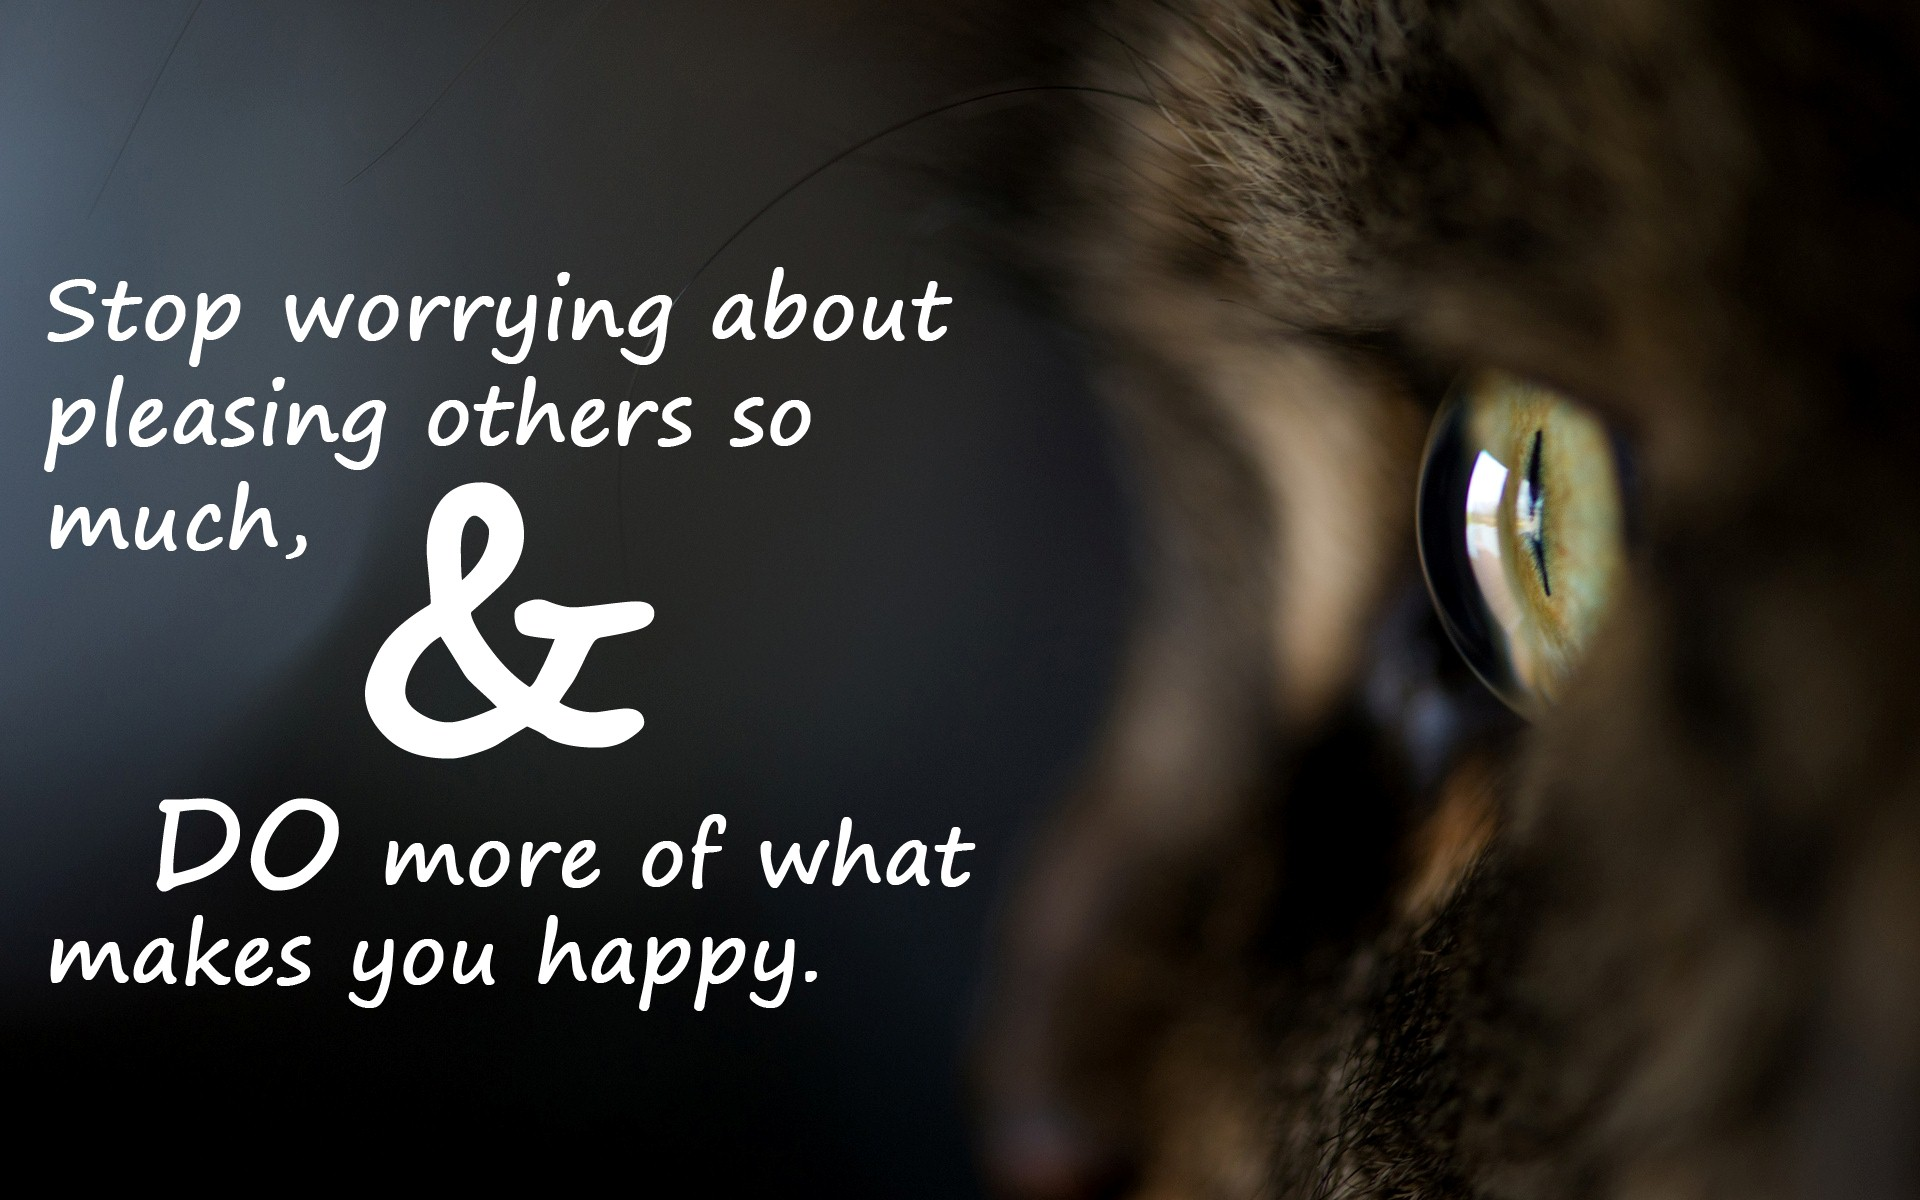 Stop Worrying About Pleasing Others So Much DO More Of What Makes You Happy